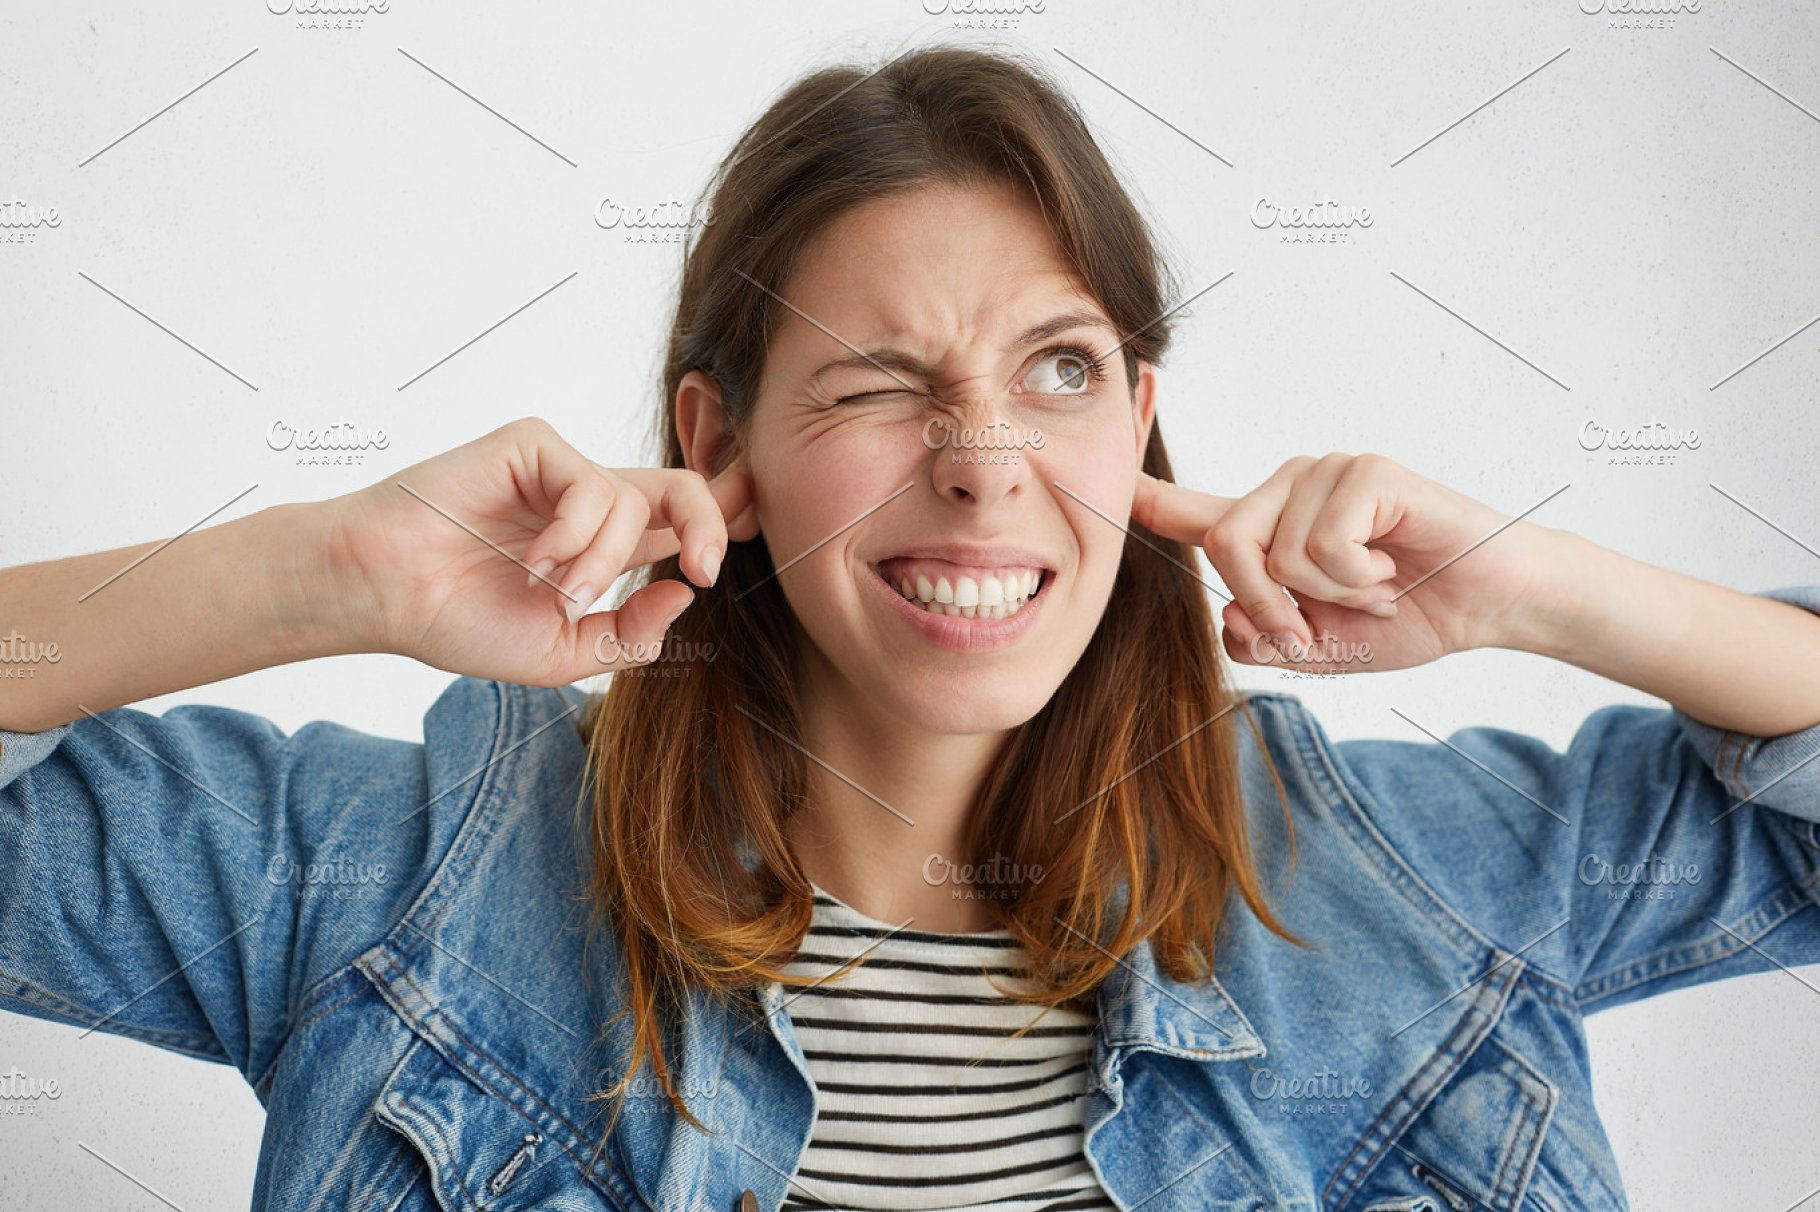 Stop making this annoying sound! Headshot of unhappy stressed out young  female making wry face, plugging ears with fingers, irritated with loud  noise